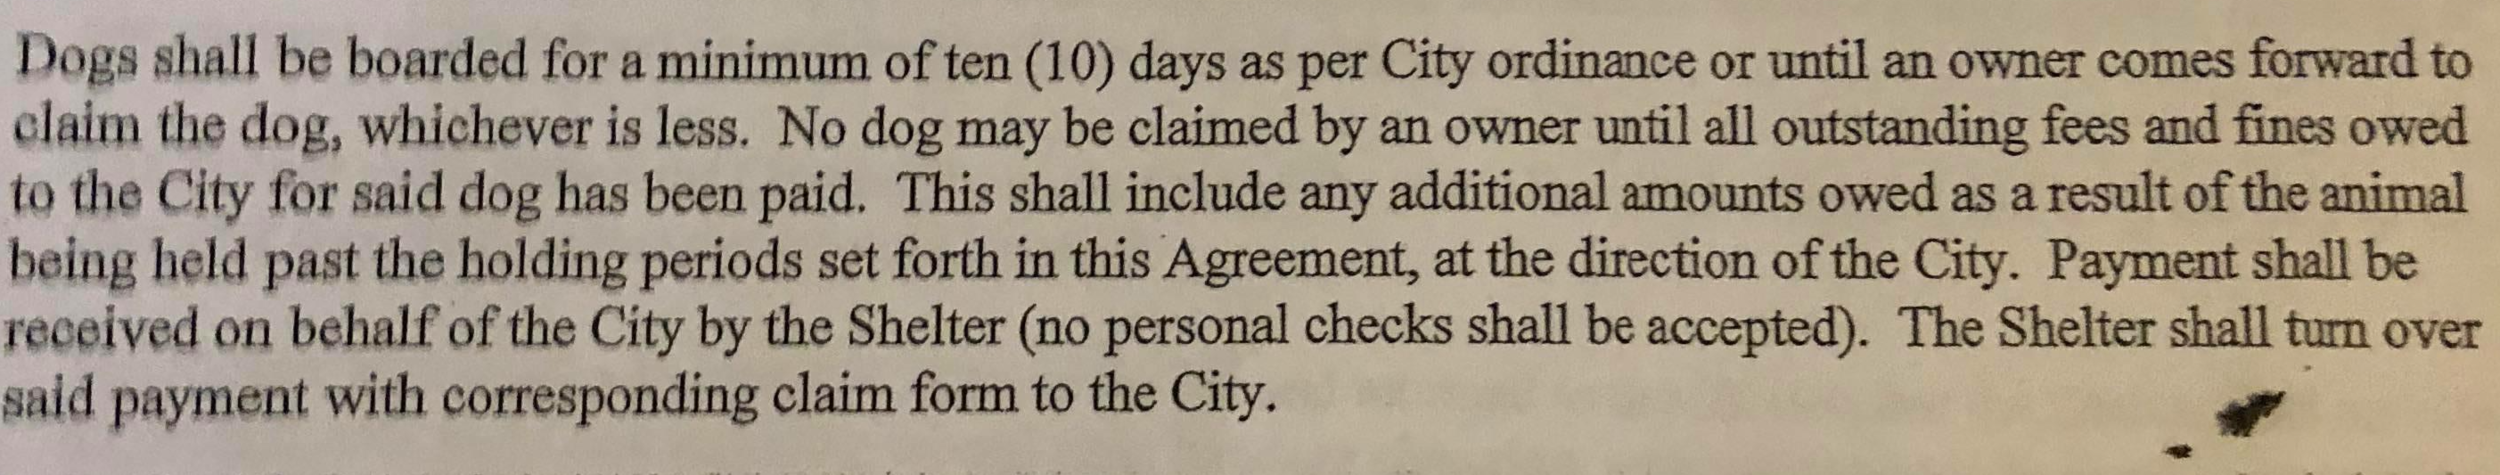 City contract with Forever Paws